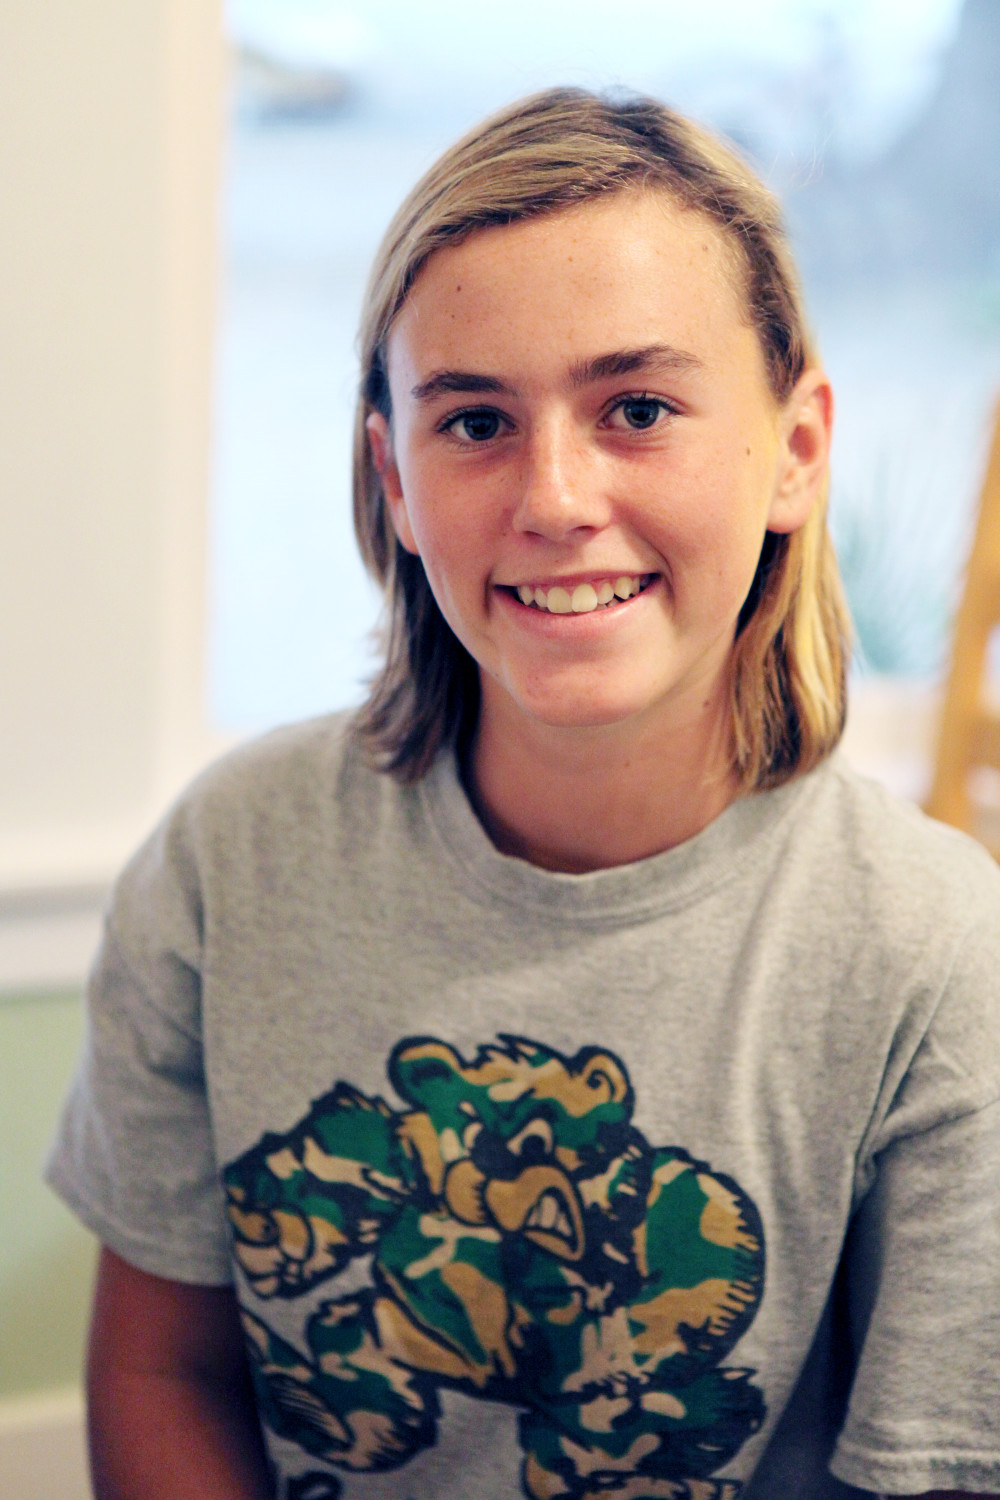 The December Student of the Month: Cate Z.